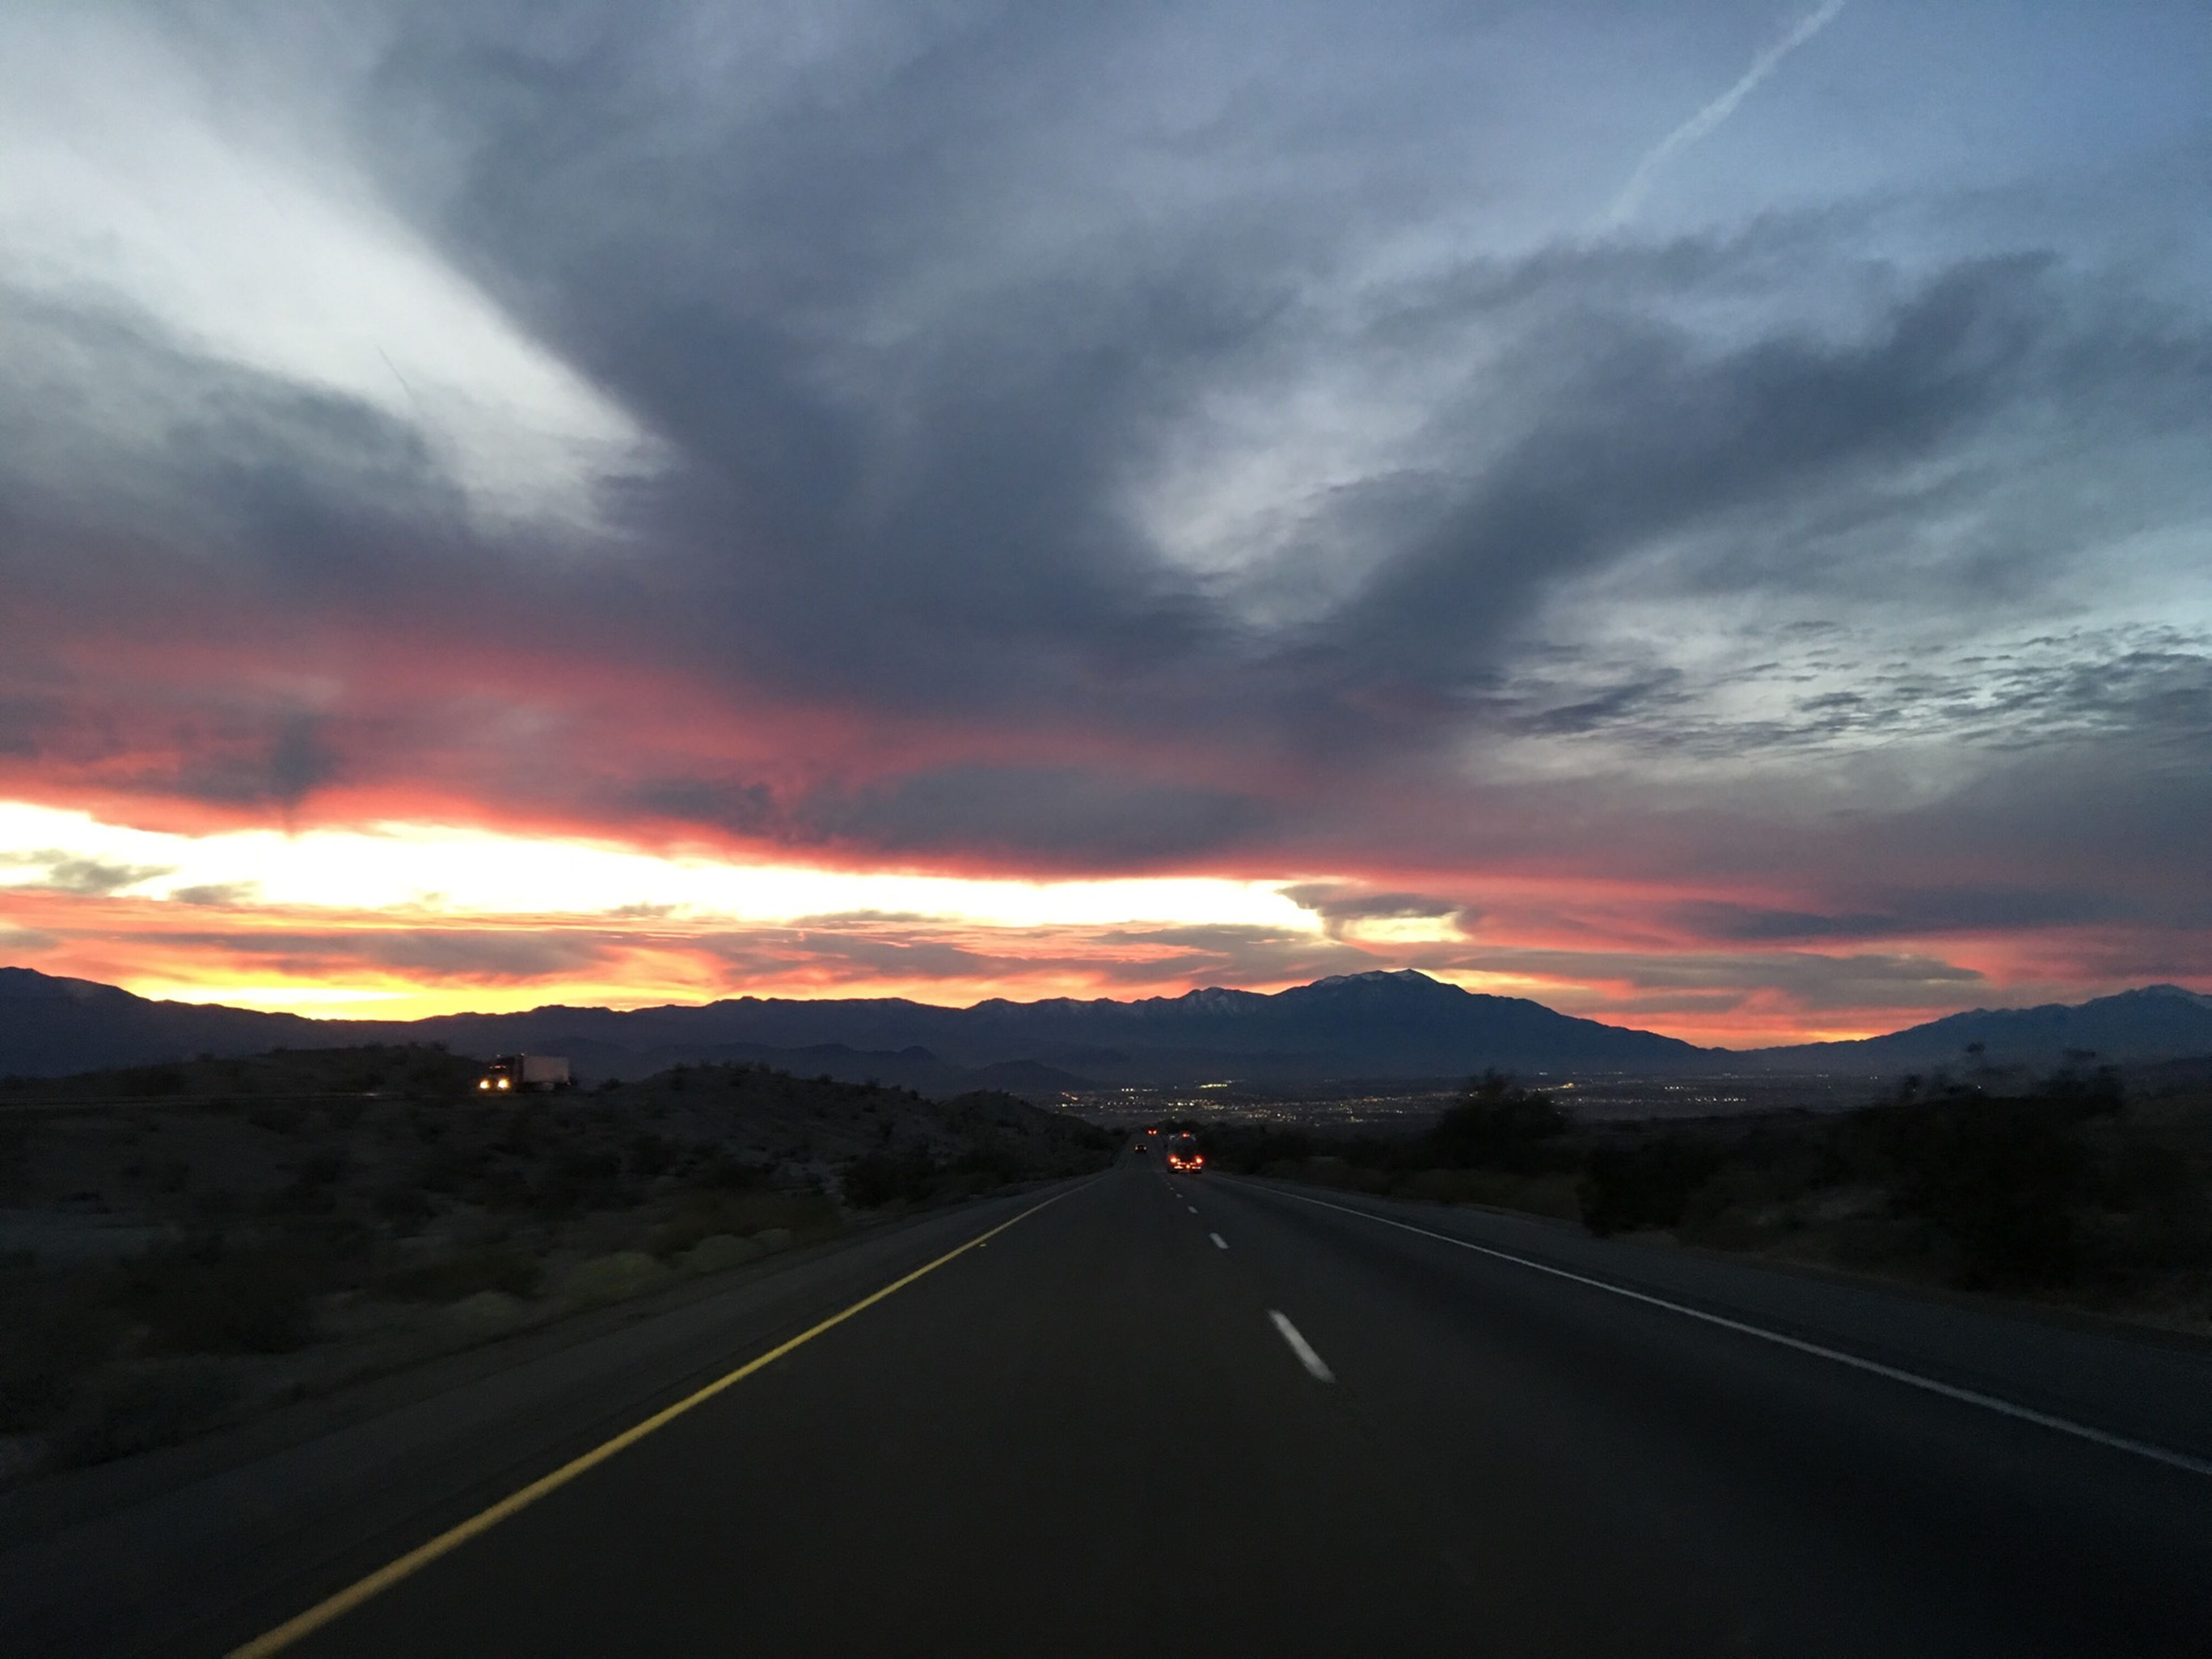 road, transportation, the way forward, sunset, sky, mountain, road marking, cloud - sky, diminishing perspective, country road, scenics, landscape, tranquil scene, beauty in nature, vanishing point, tranquility, nature, mountain range, orange color, cloud